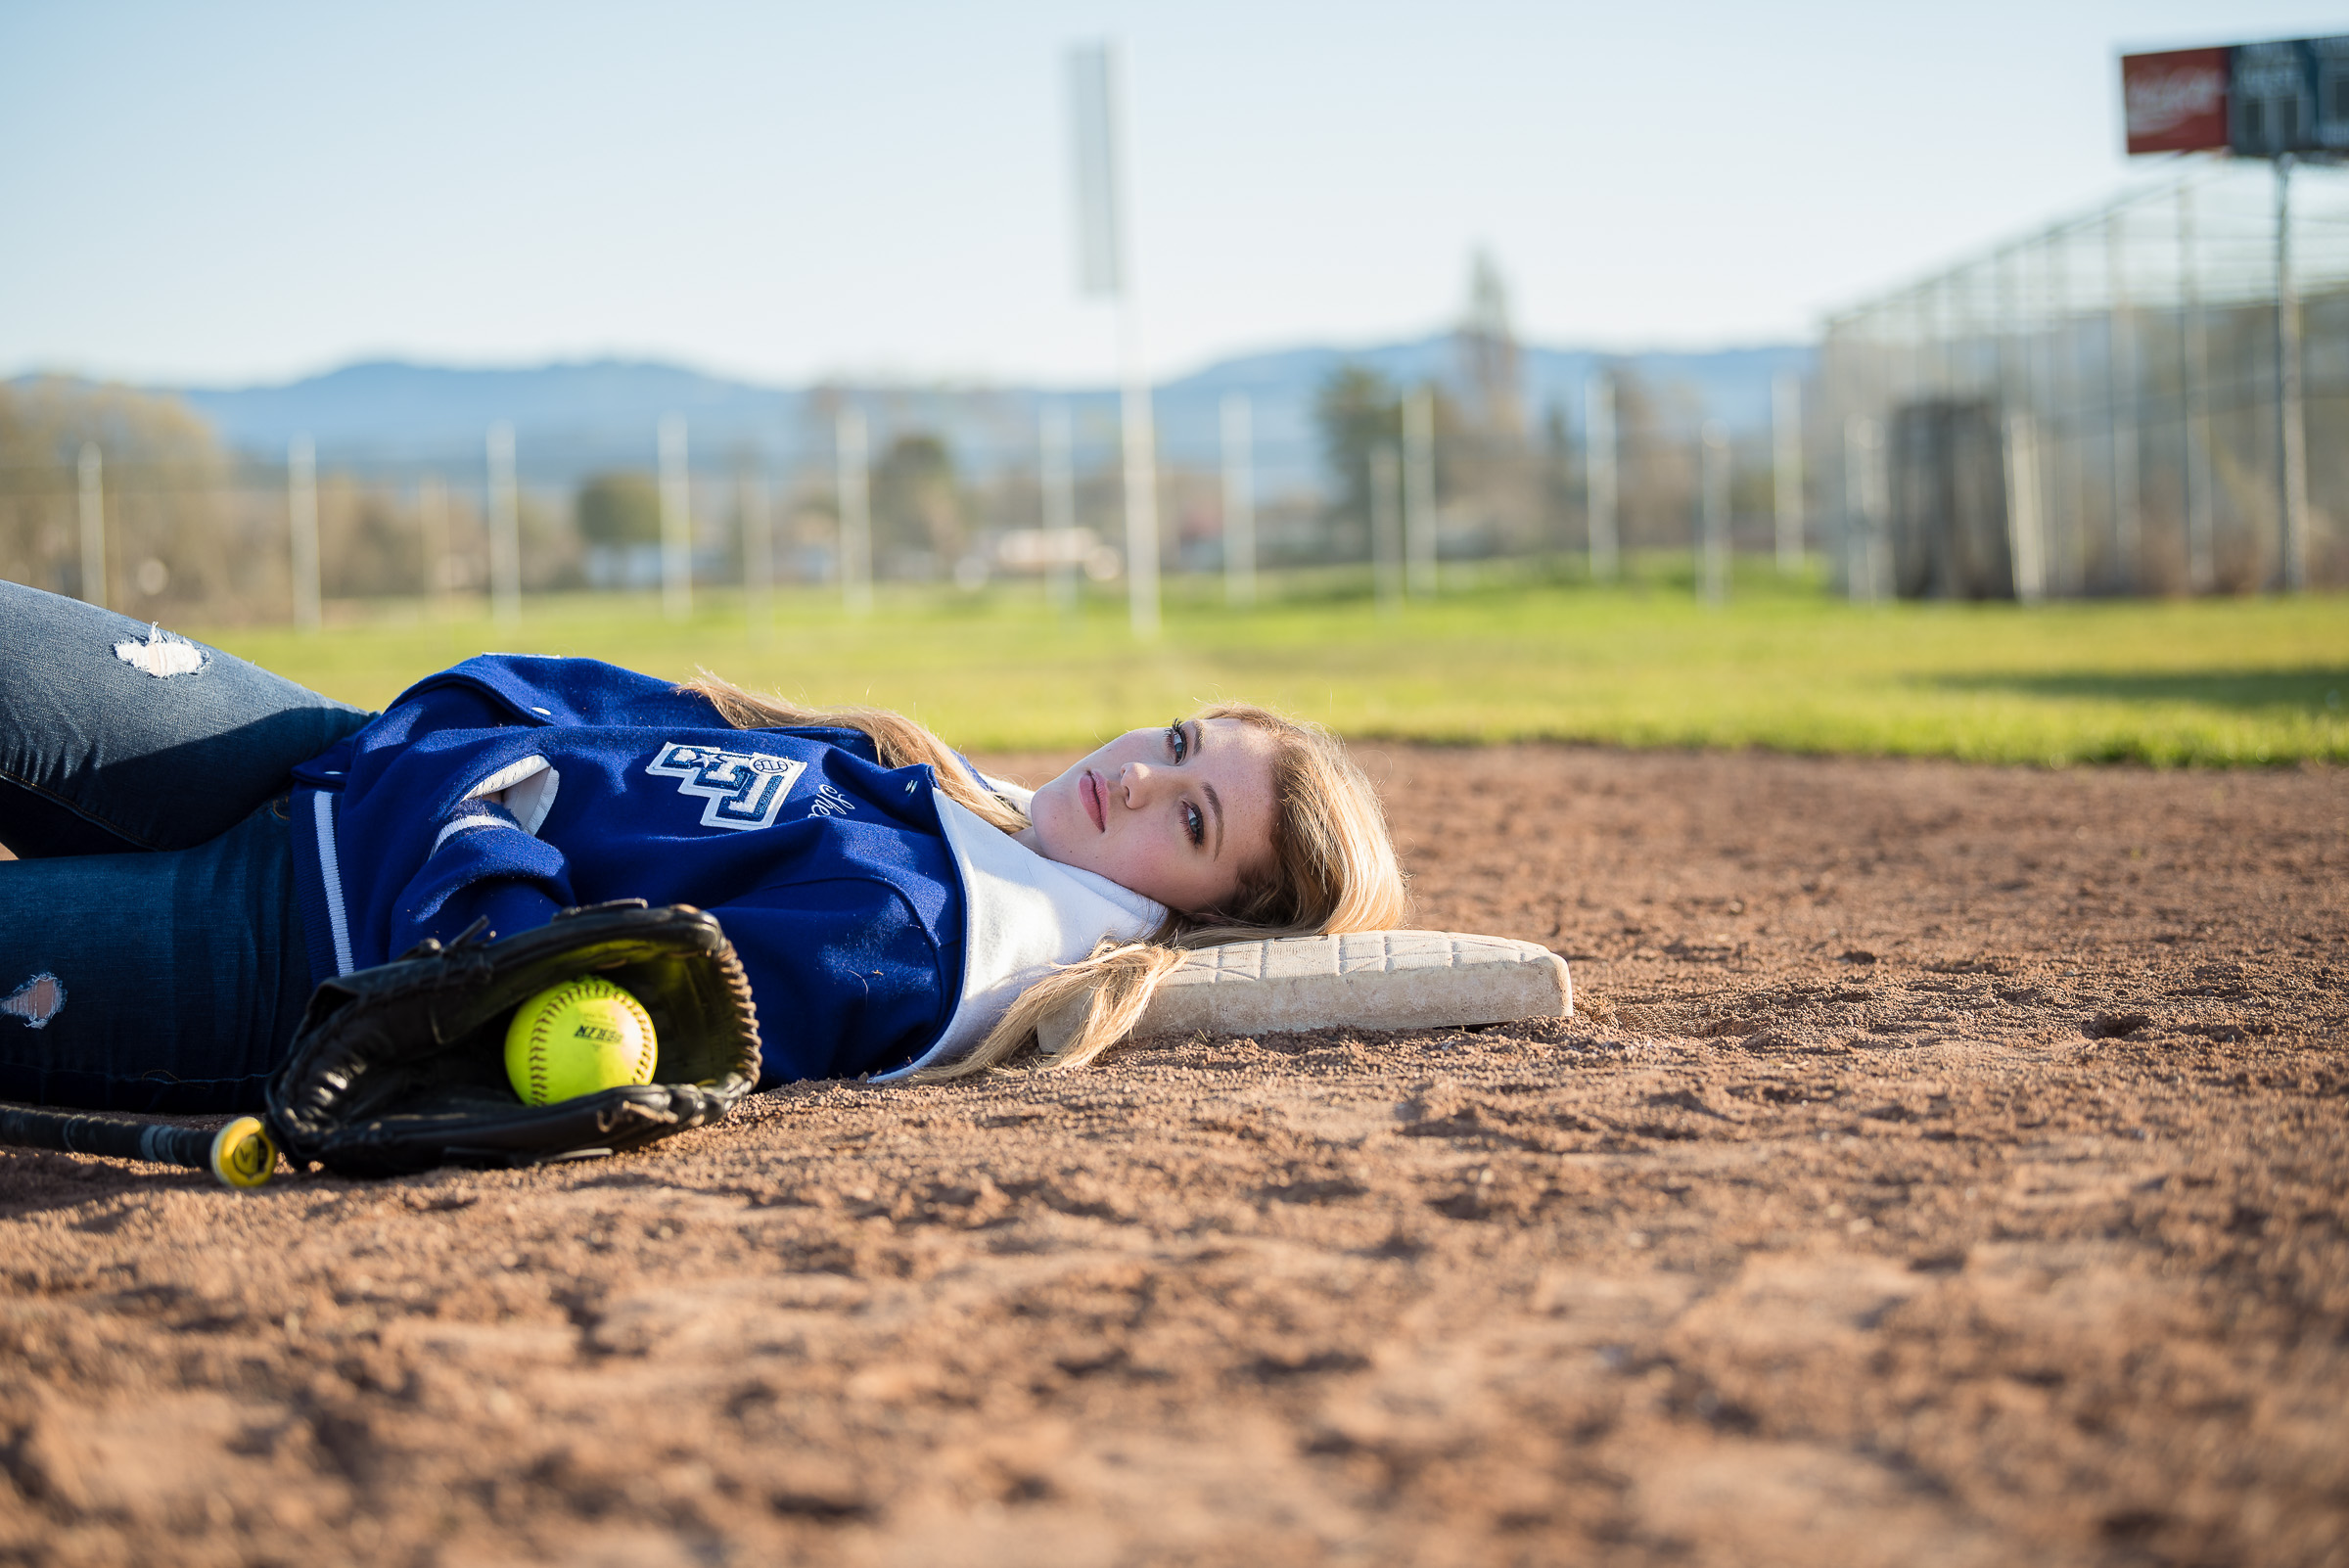 HumboldtCountySeniorPhotographer-Shelby-FortunaHigh-Softball-8.JPG